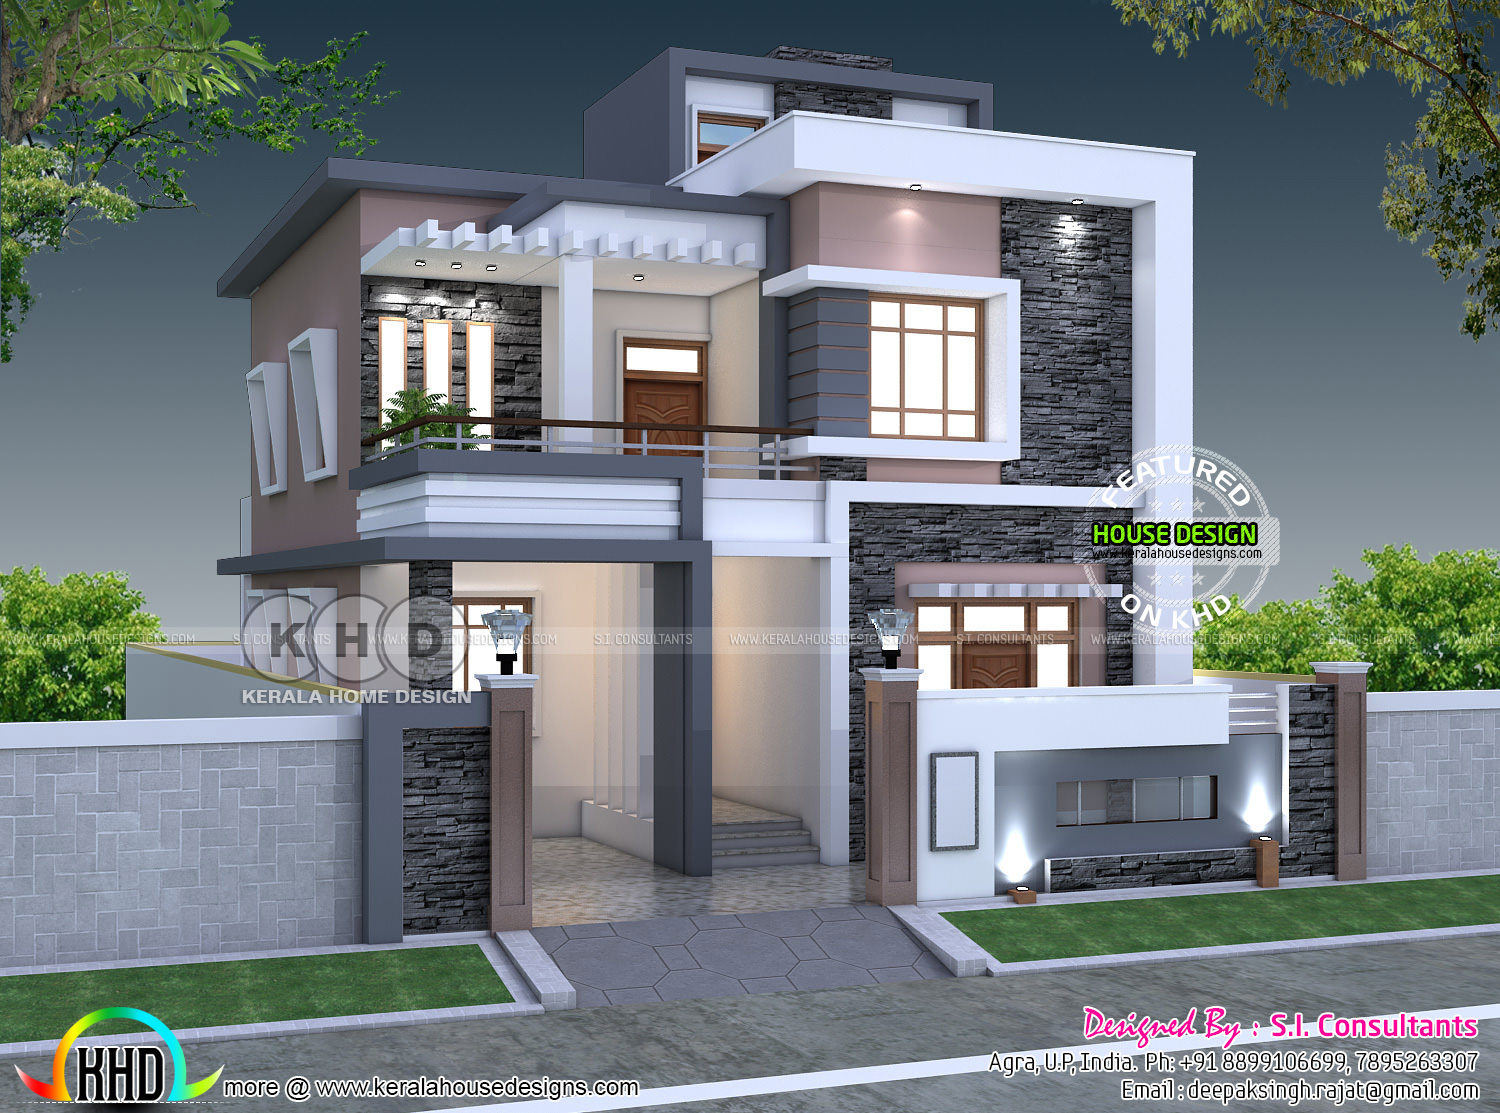 35x 55, 5 bedroom modern contemporary home - Kerala home ...